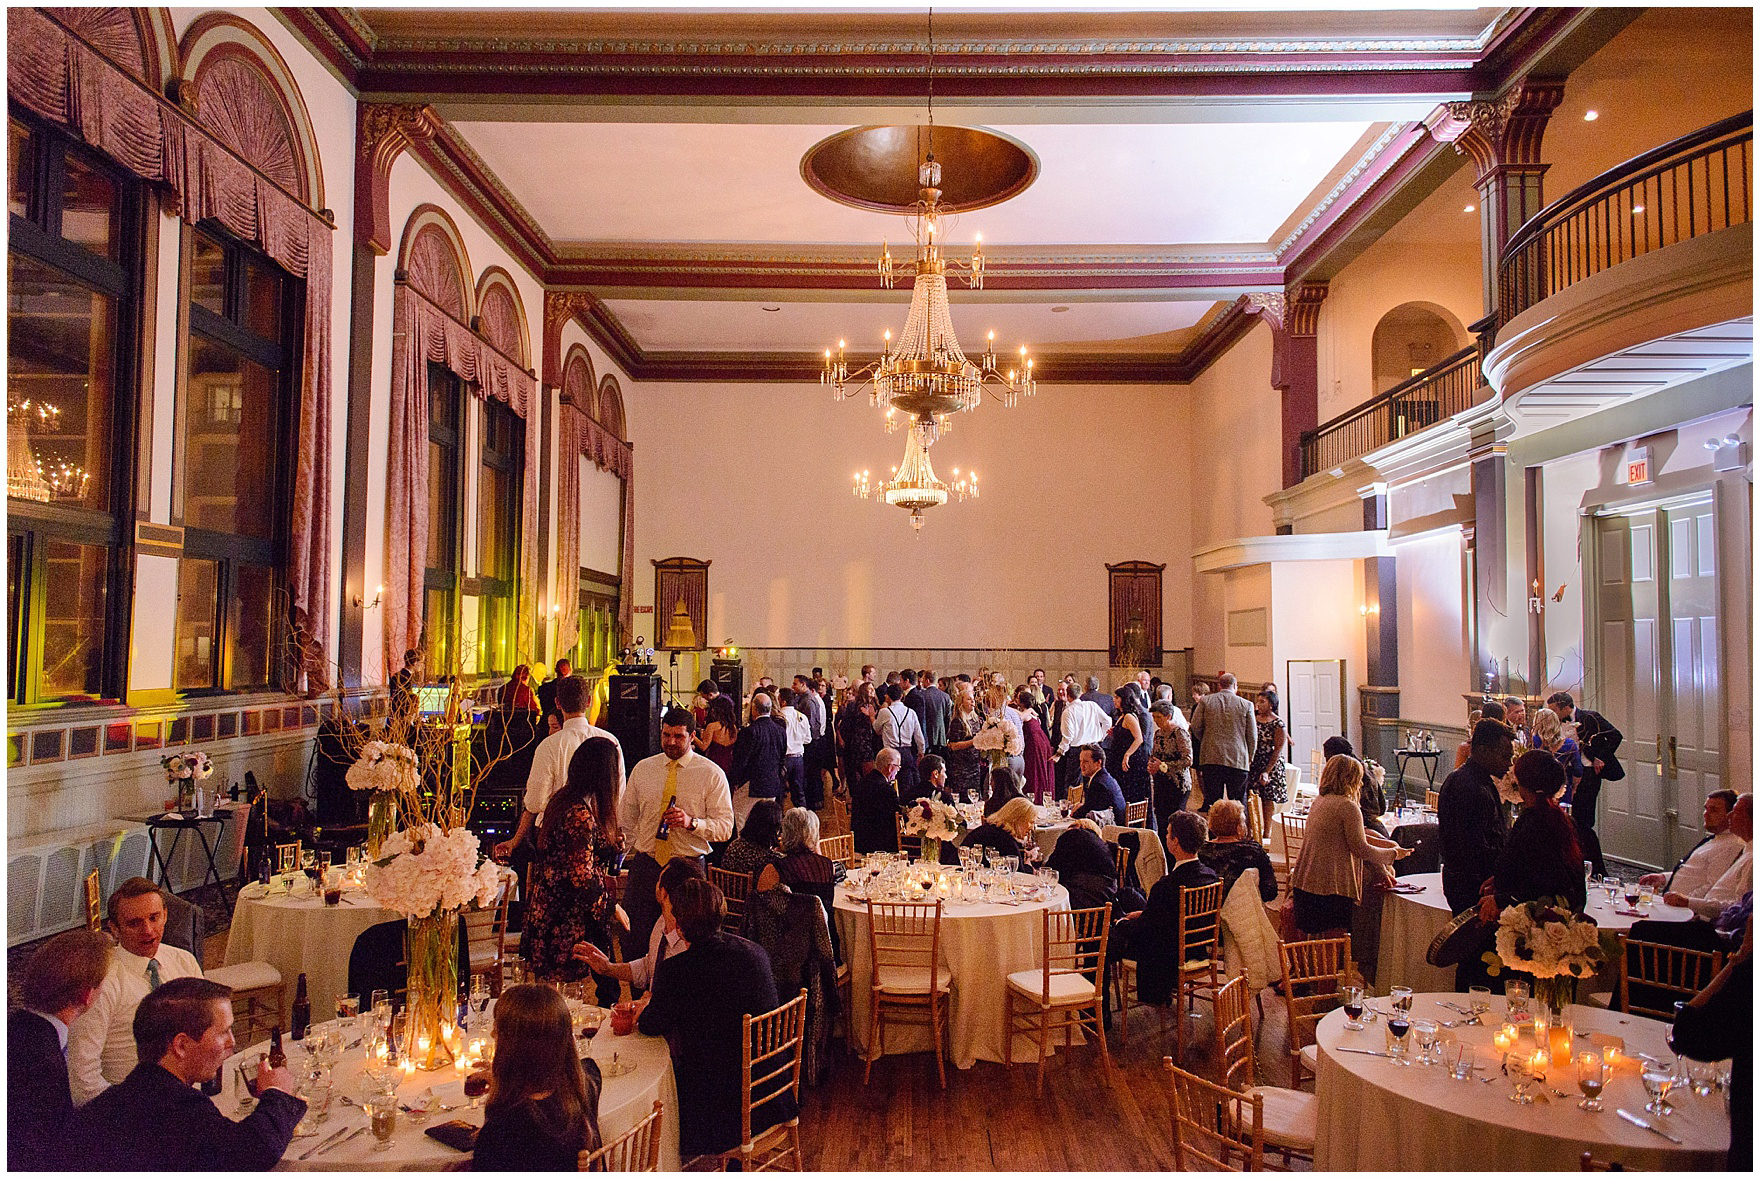 Guests dance and mingle during a St. Clement Germania Place Chicago wedding.